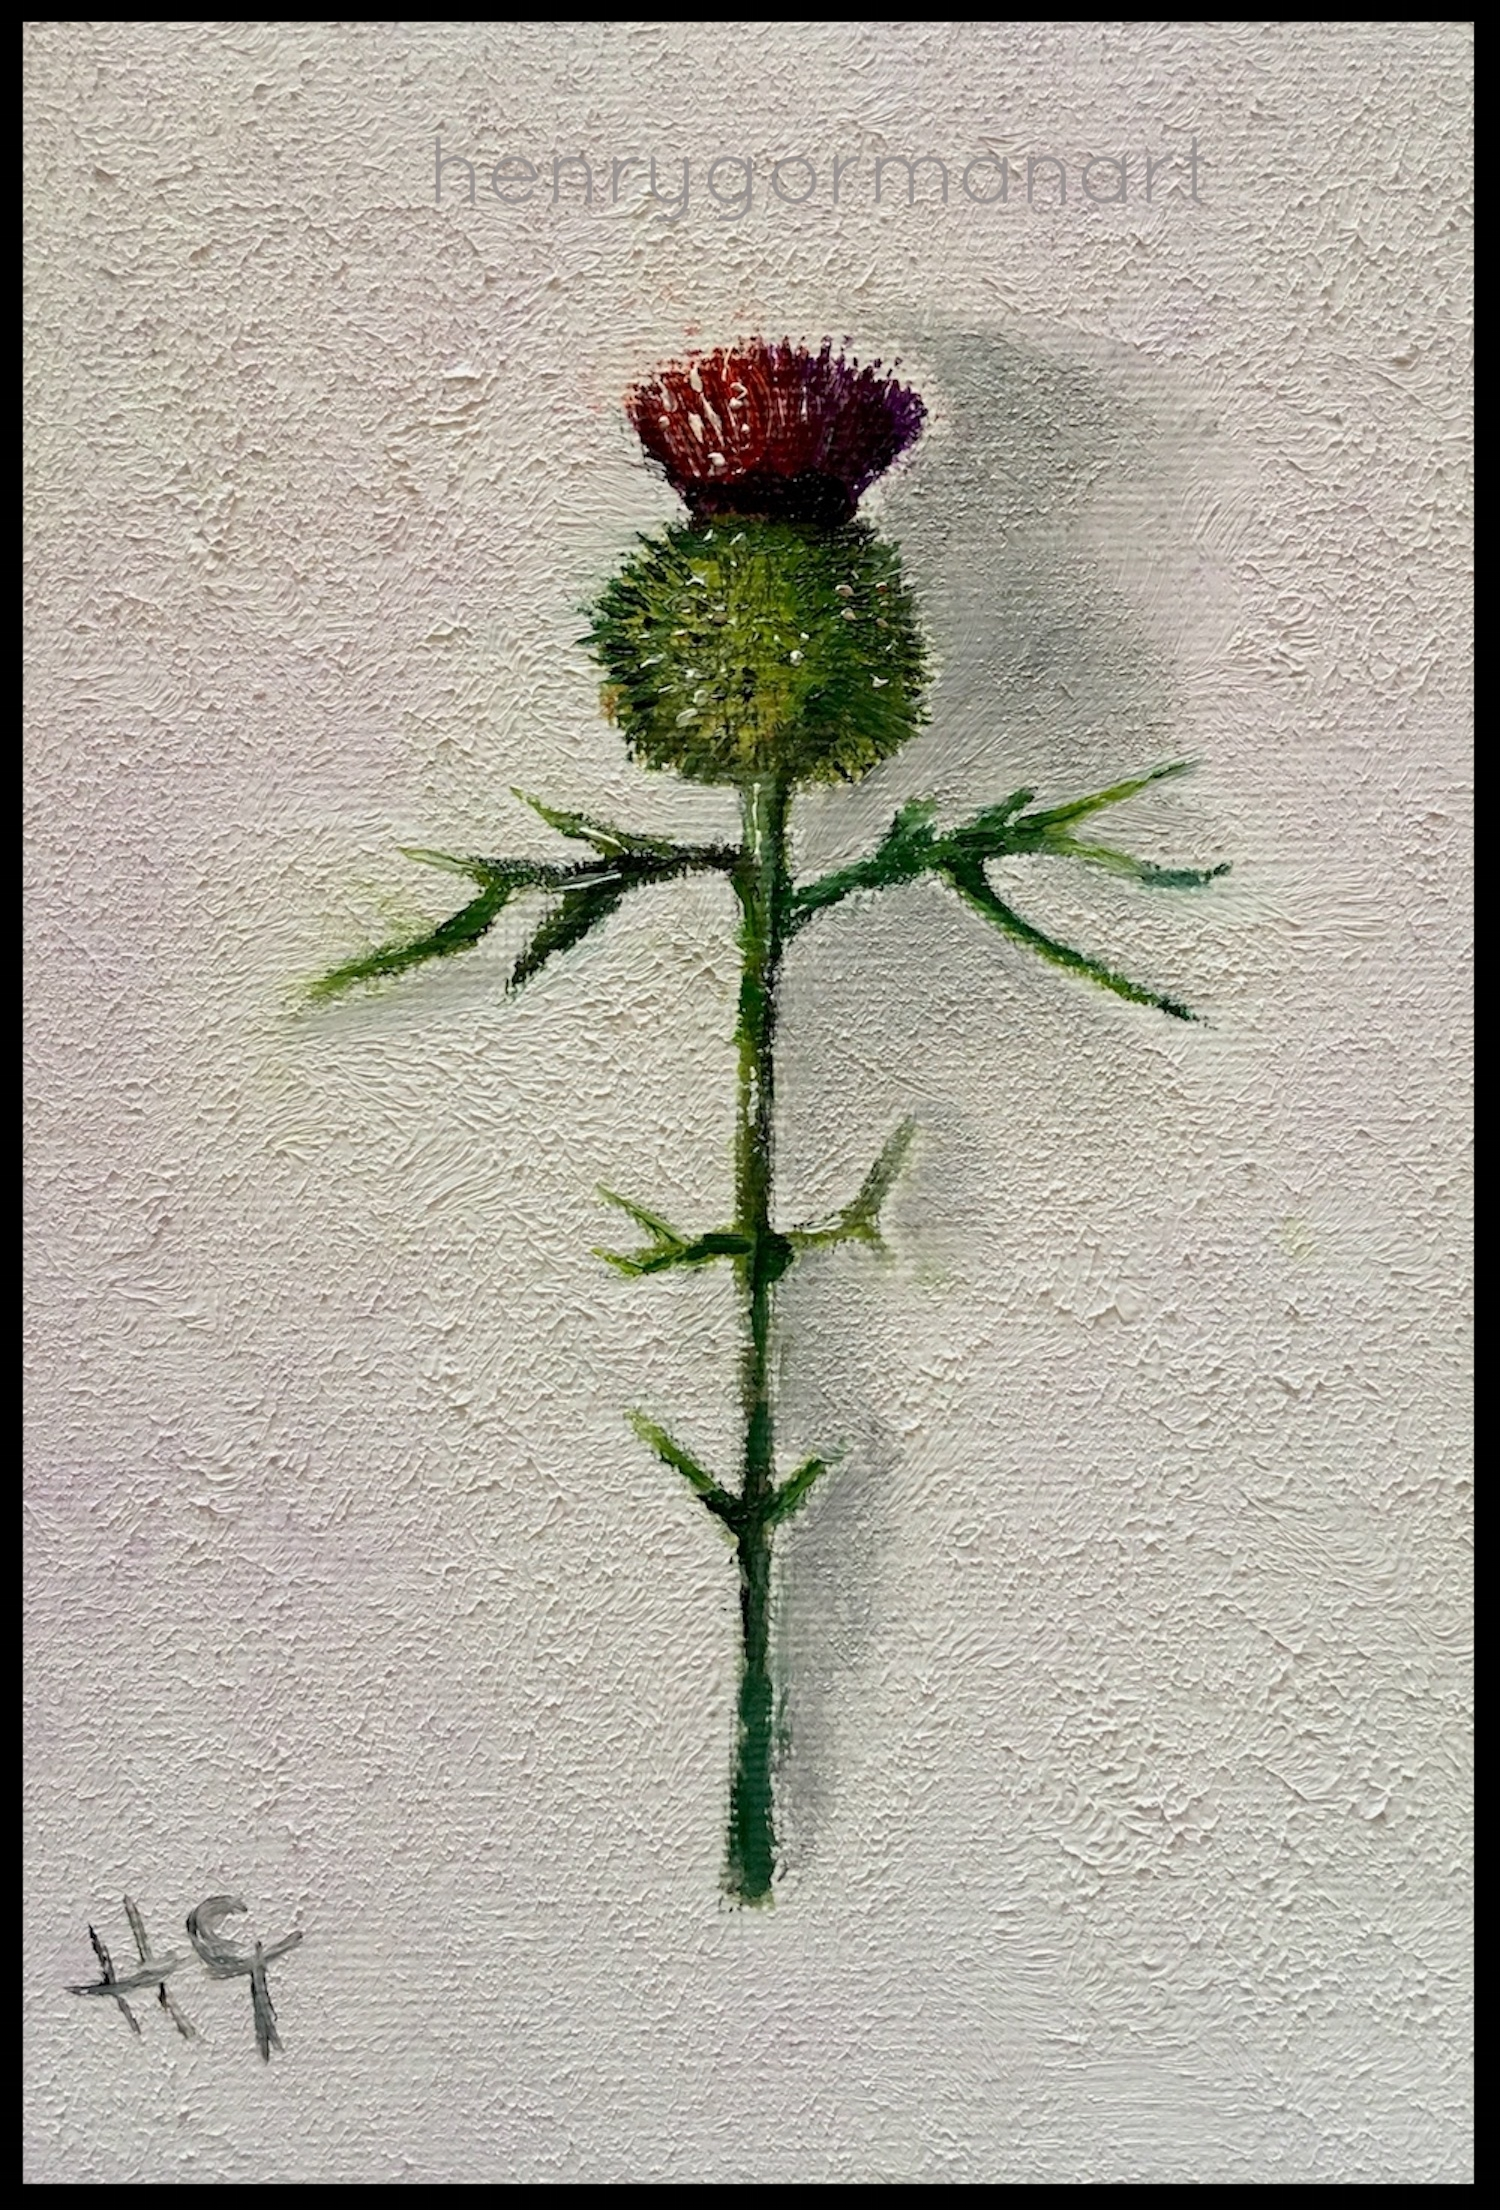 'Wee thistle # 1'